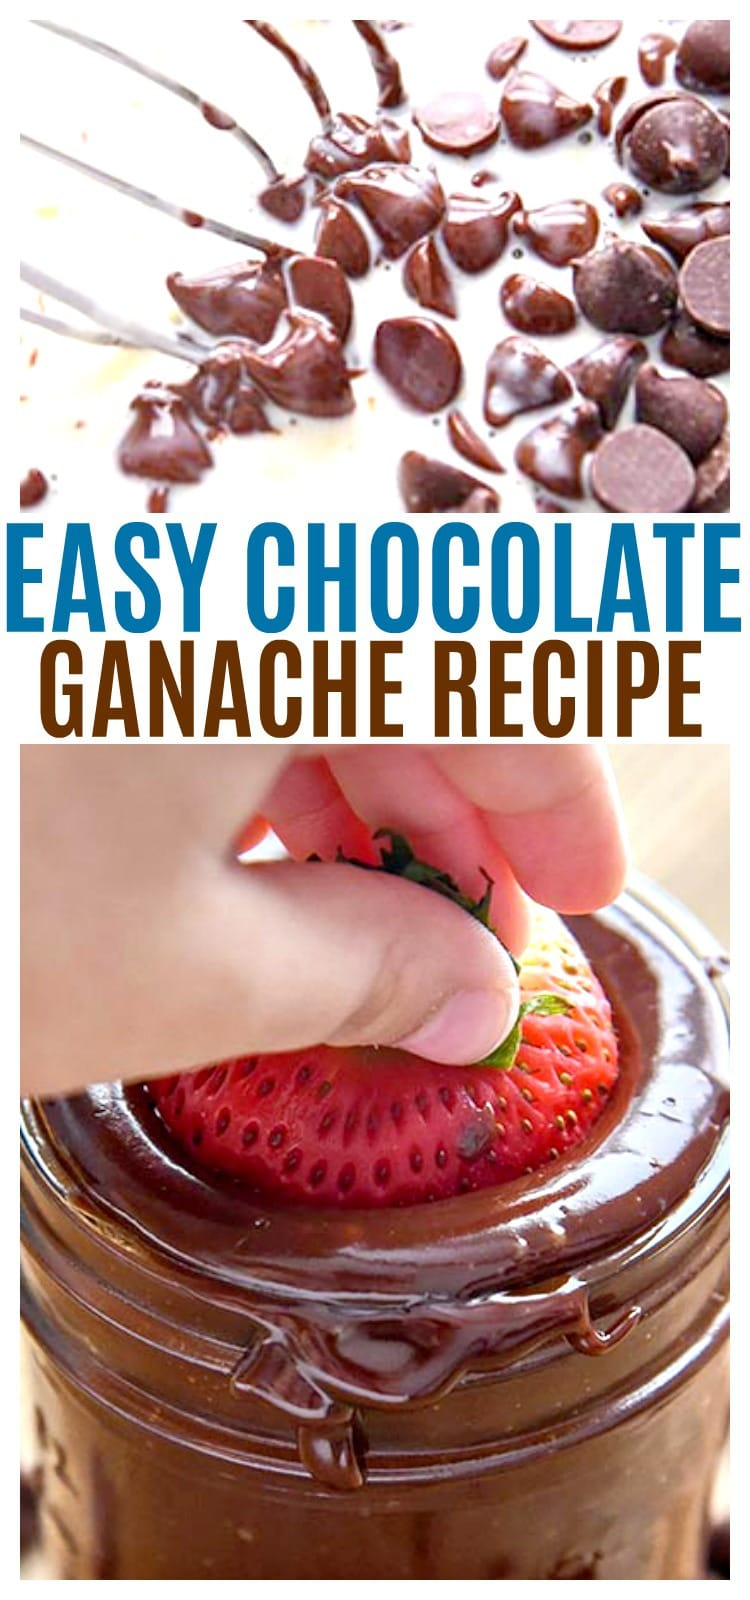 Our Easy Chocolate Ganache recipe can be the perfect fruit dip, chocolate ganache frosting, or even whip it for the best whipped chocolate ganache frosting. So easy to make and eat! pin image